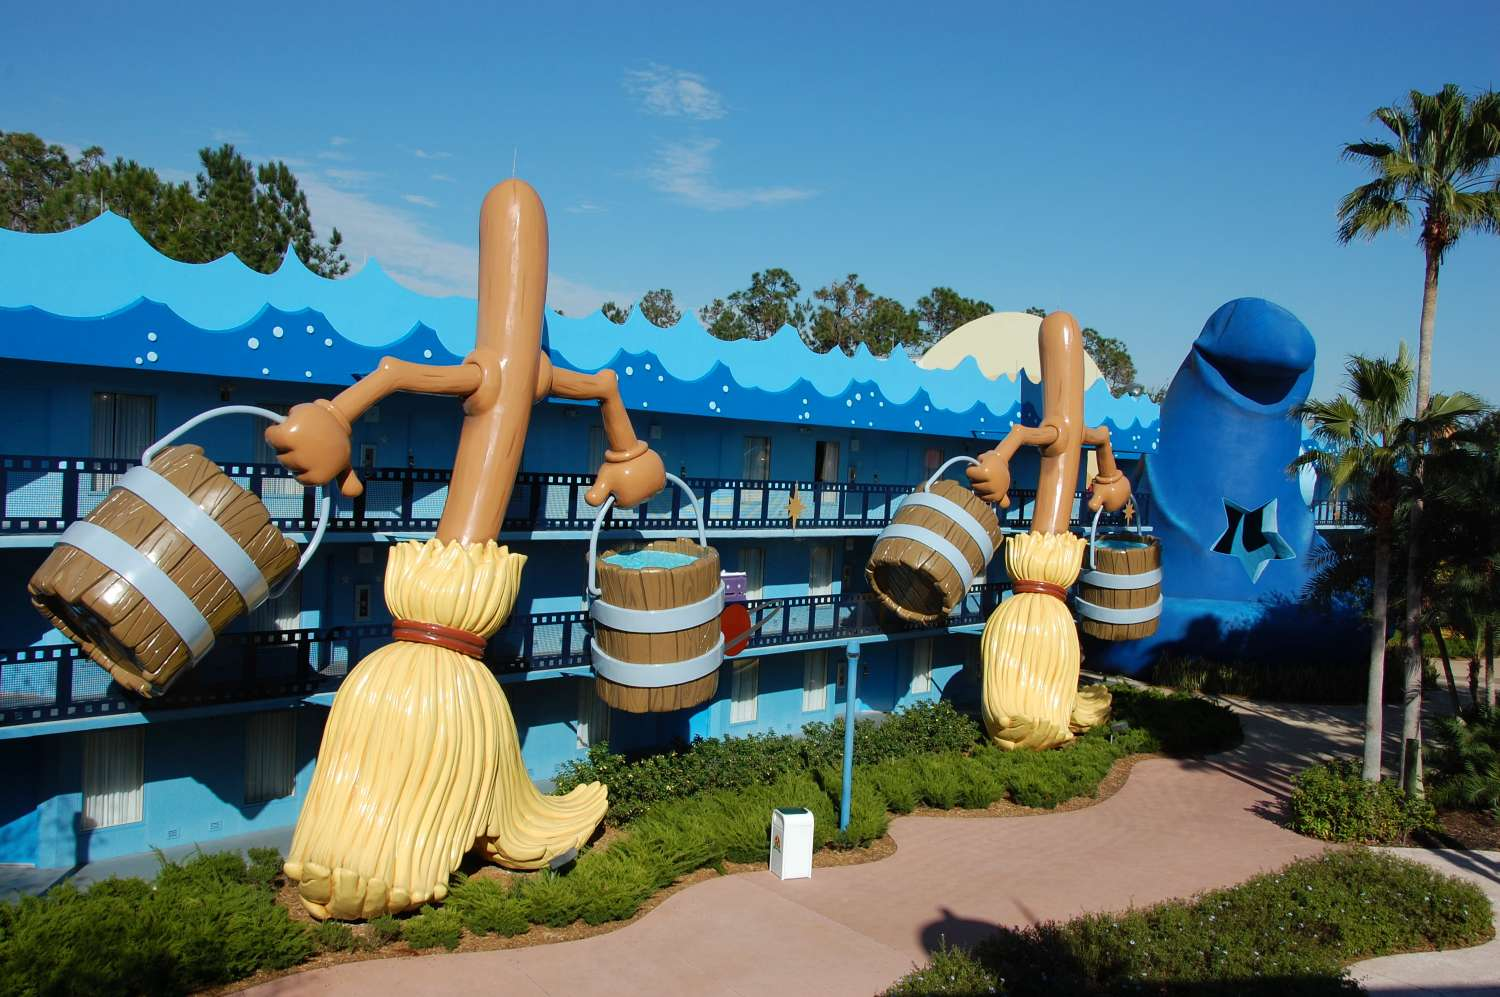 Brooms in the Fantasia area of Disney's All-Star Movies Resort